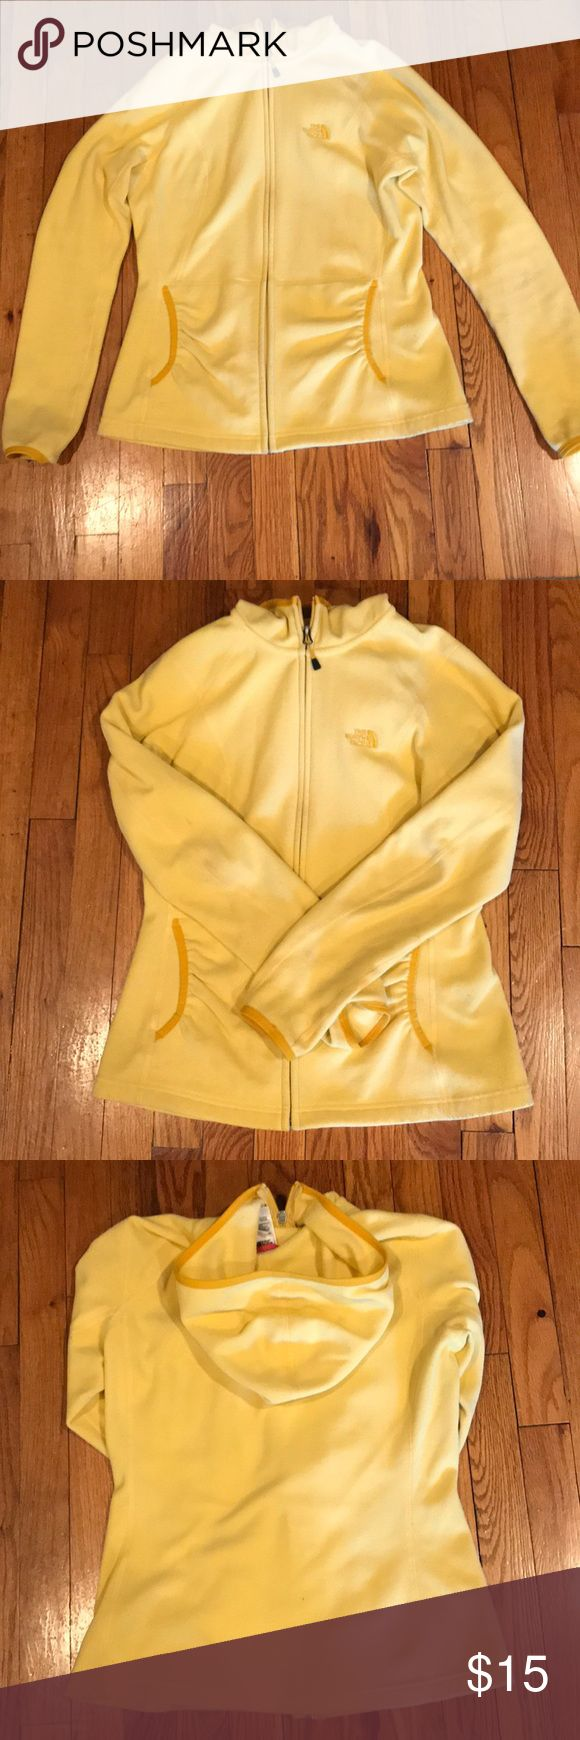 North face zip up fleece Yellow north face zip up fleece with hood. Size M The North Face Jackets & Coats